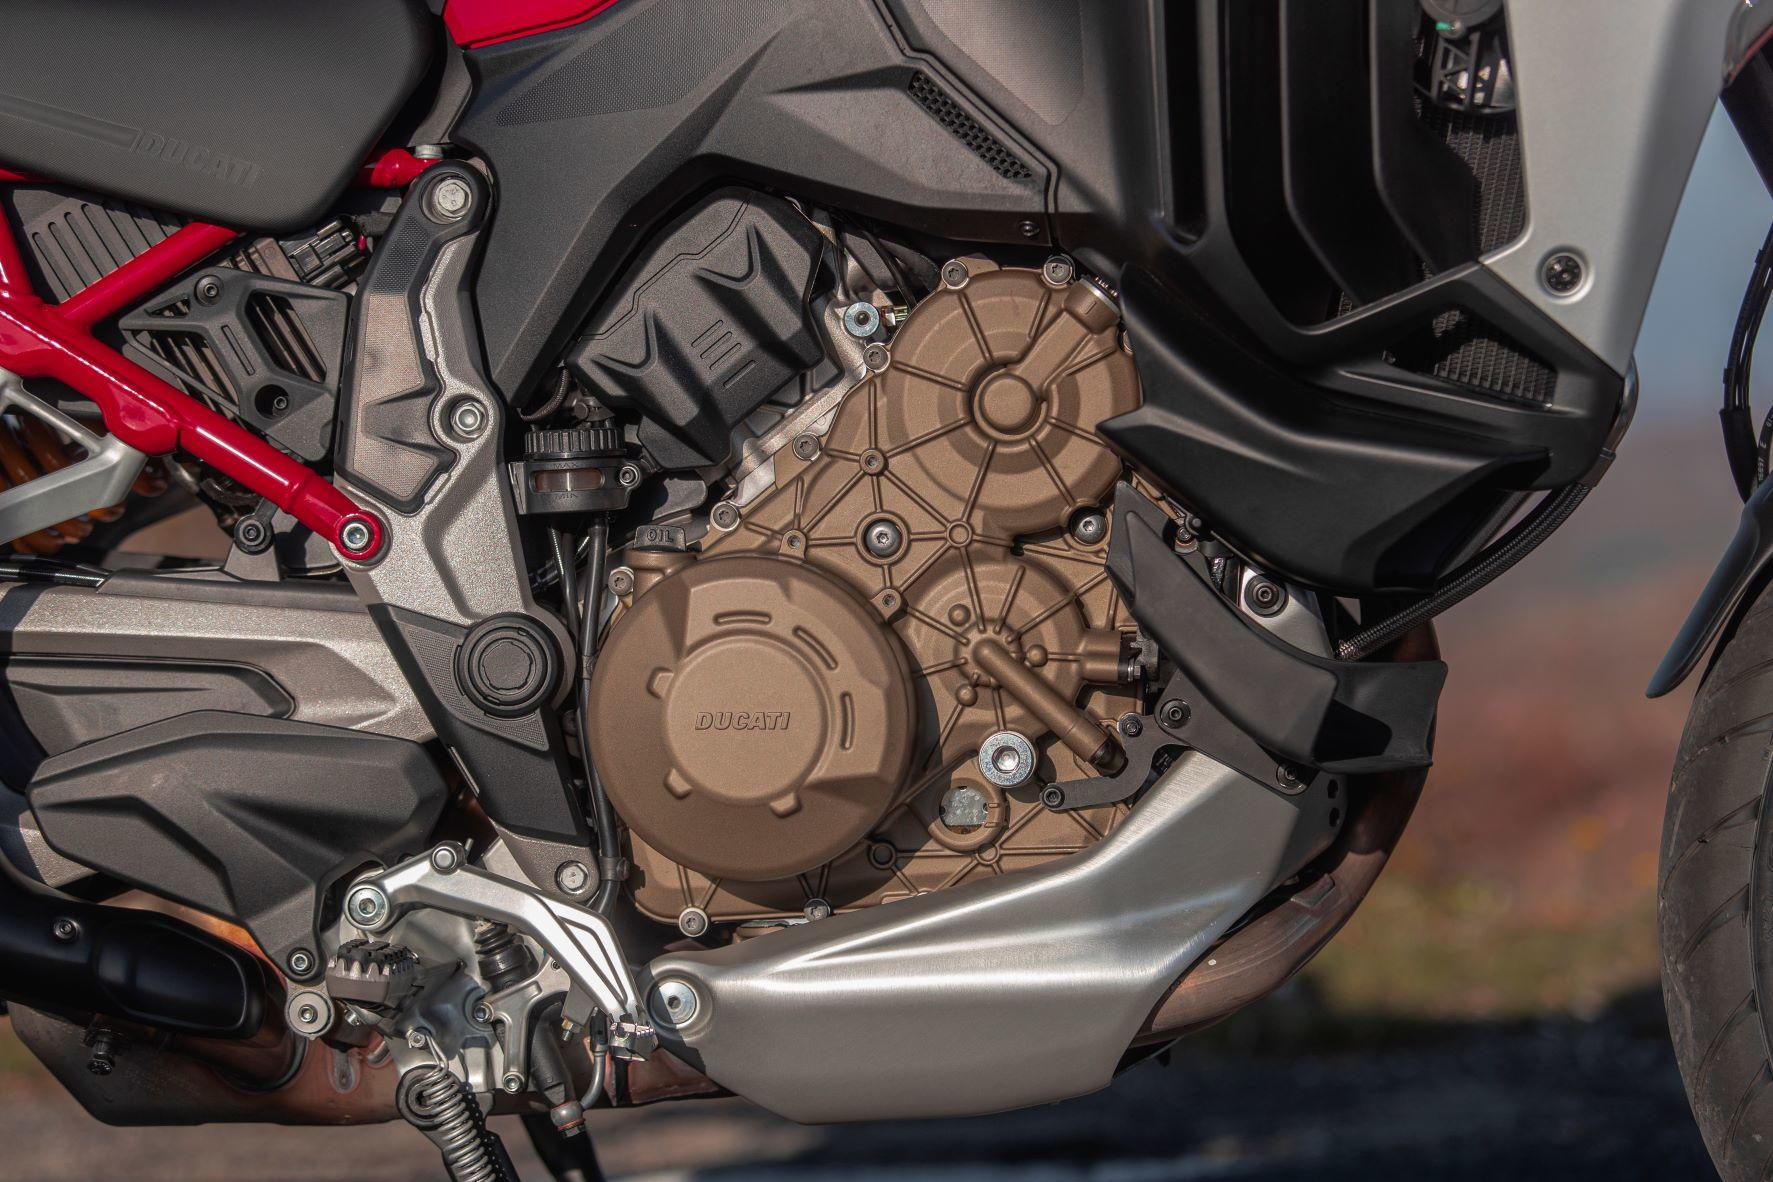 Ducati launches adventure tourer bikes V4, V4 S in India, price starts at INR 18.99 lakh